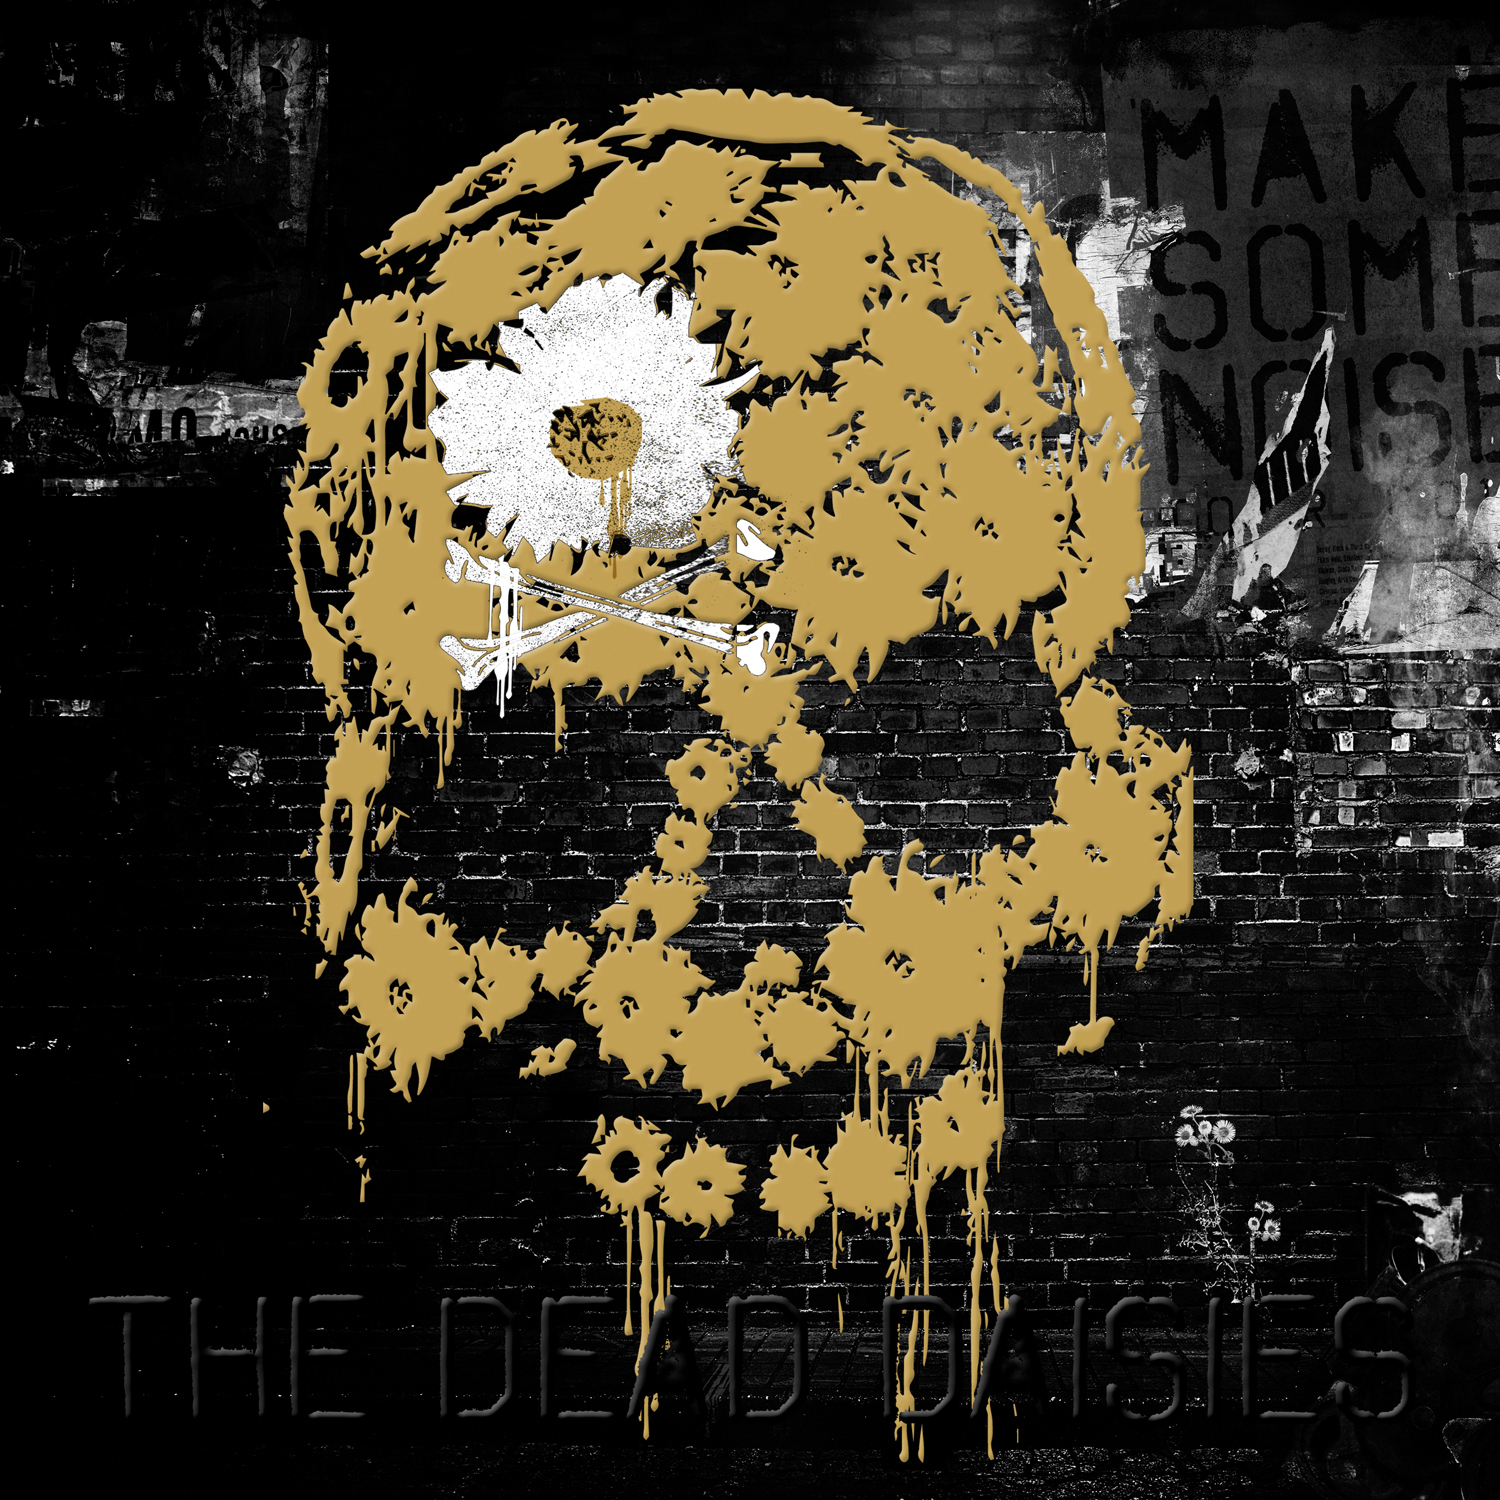 THE DEAD DAISIES New Album MAKE SOME NOISE released today 5th August